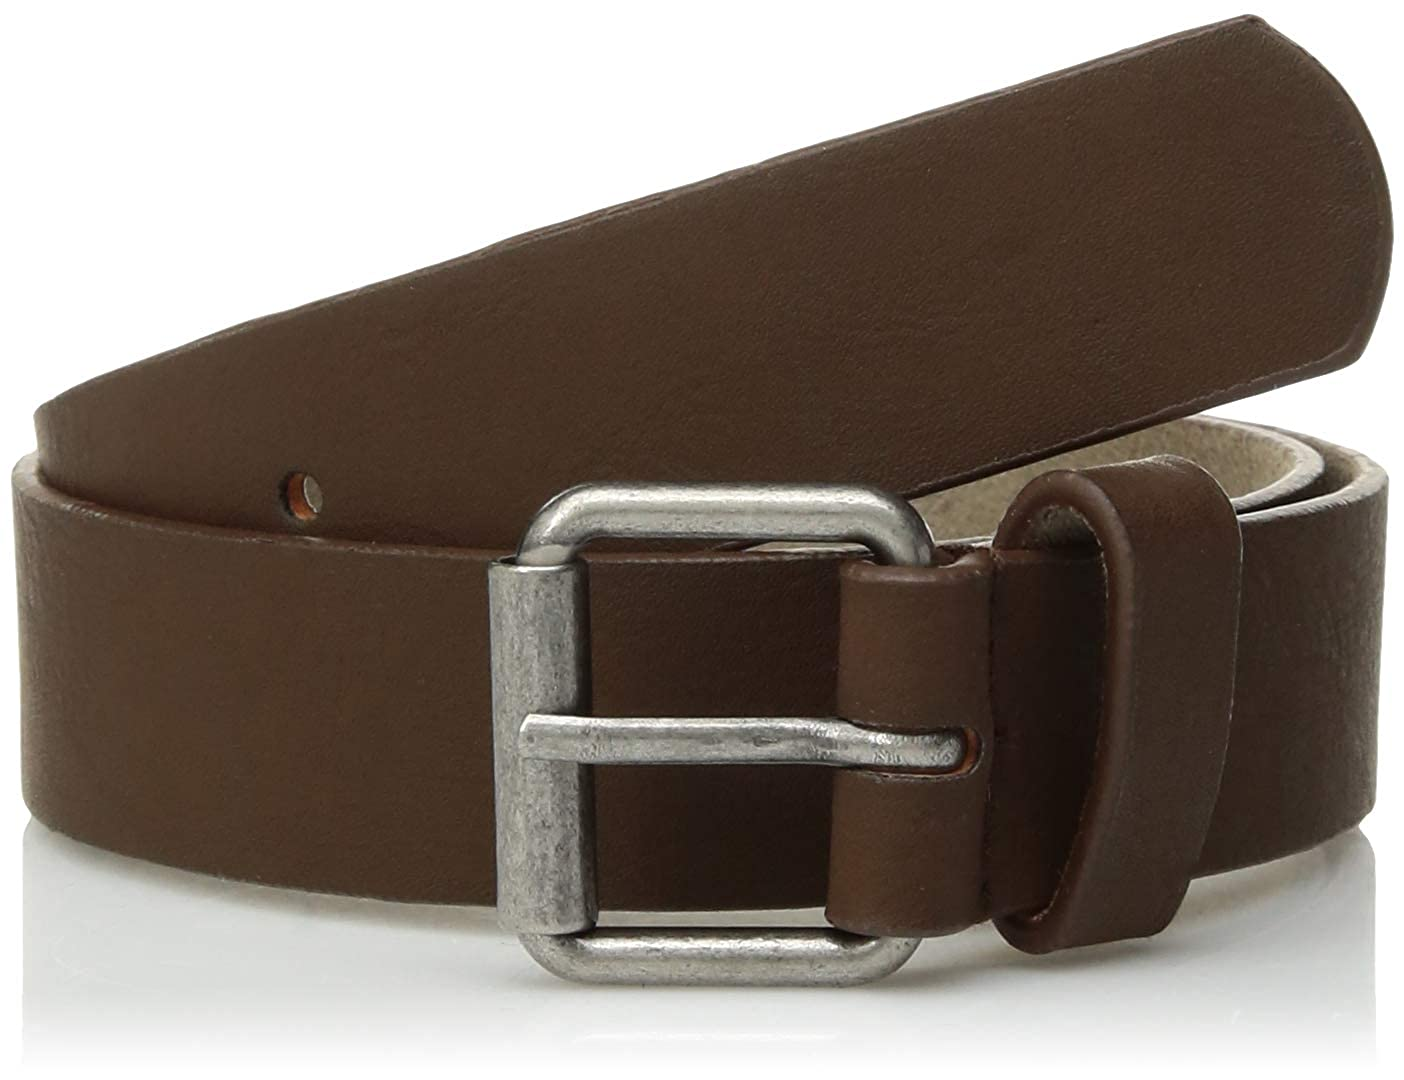 Carter's Toddler Boys Brown Adjustable Faux Leather Belt, 2-5 Years Carter' s CR03486-205-AMZ